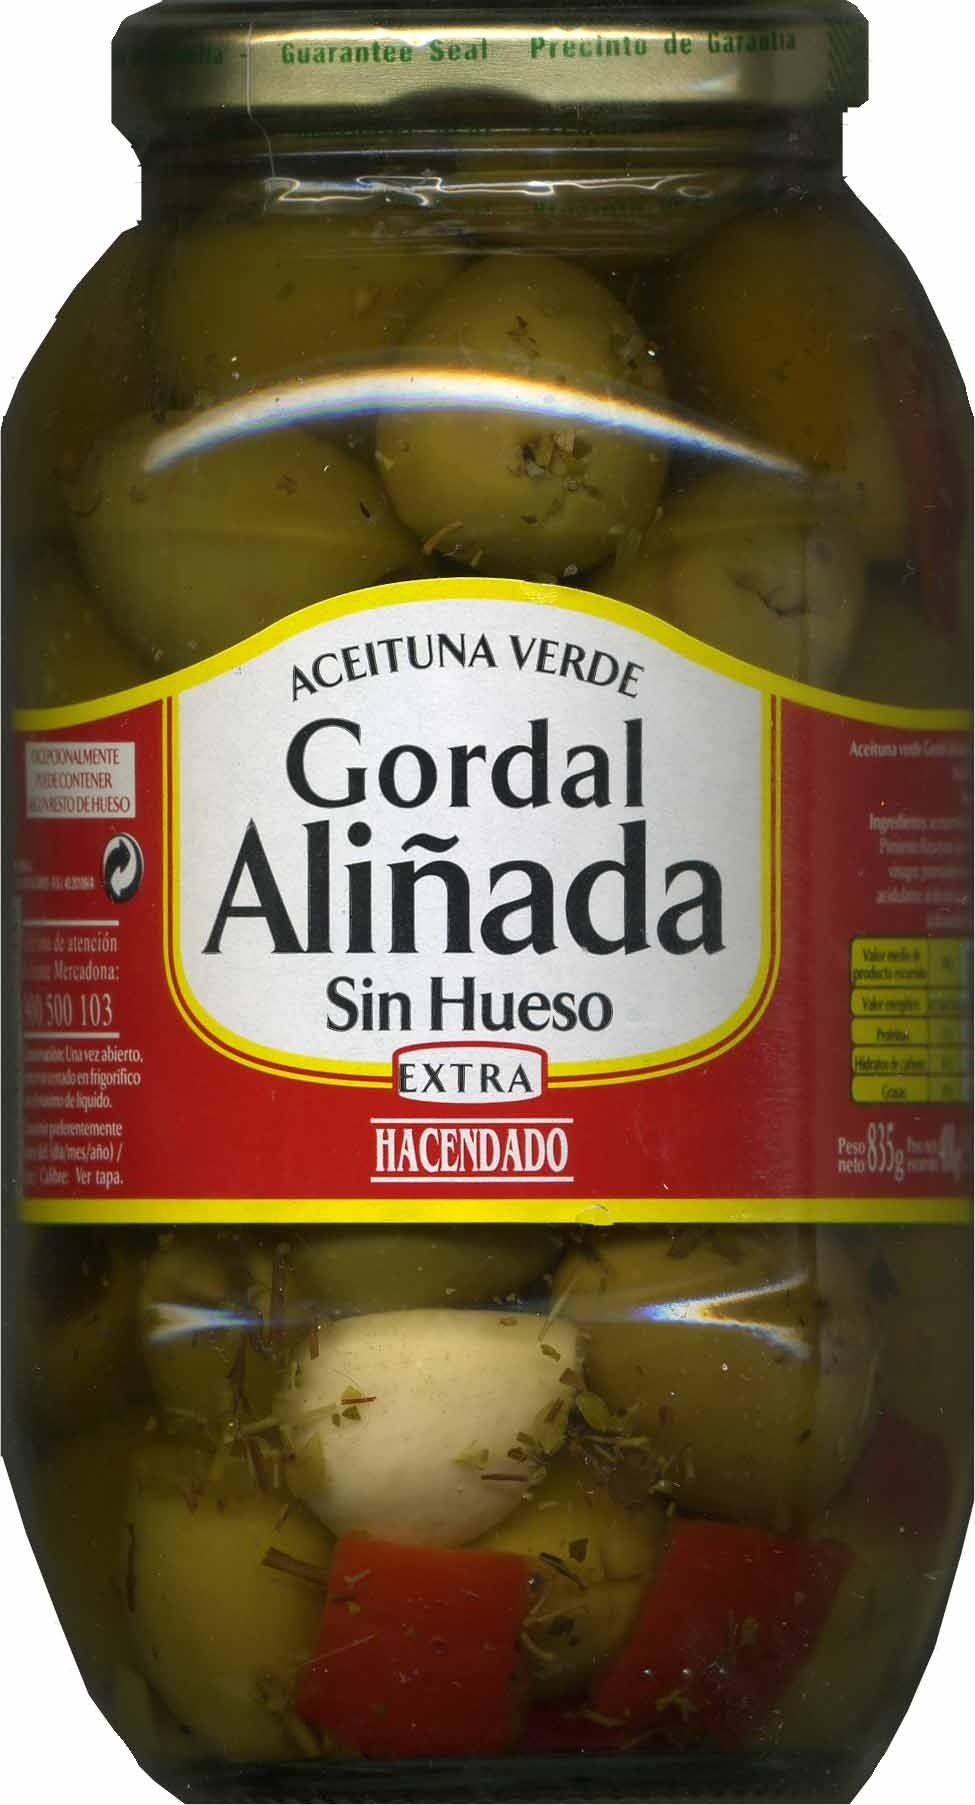 Aceitunas verdes gordal sin hueso - Producte